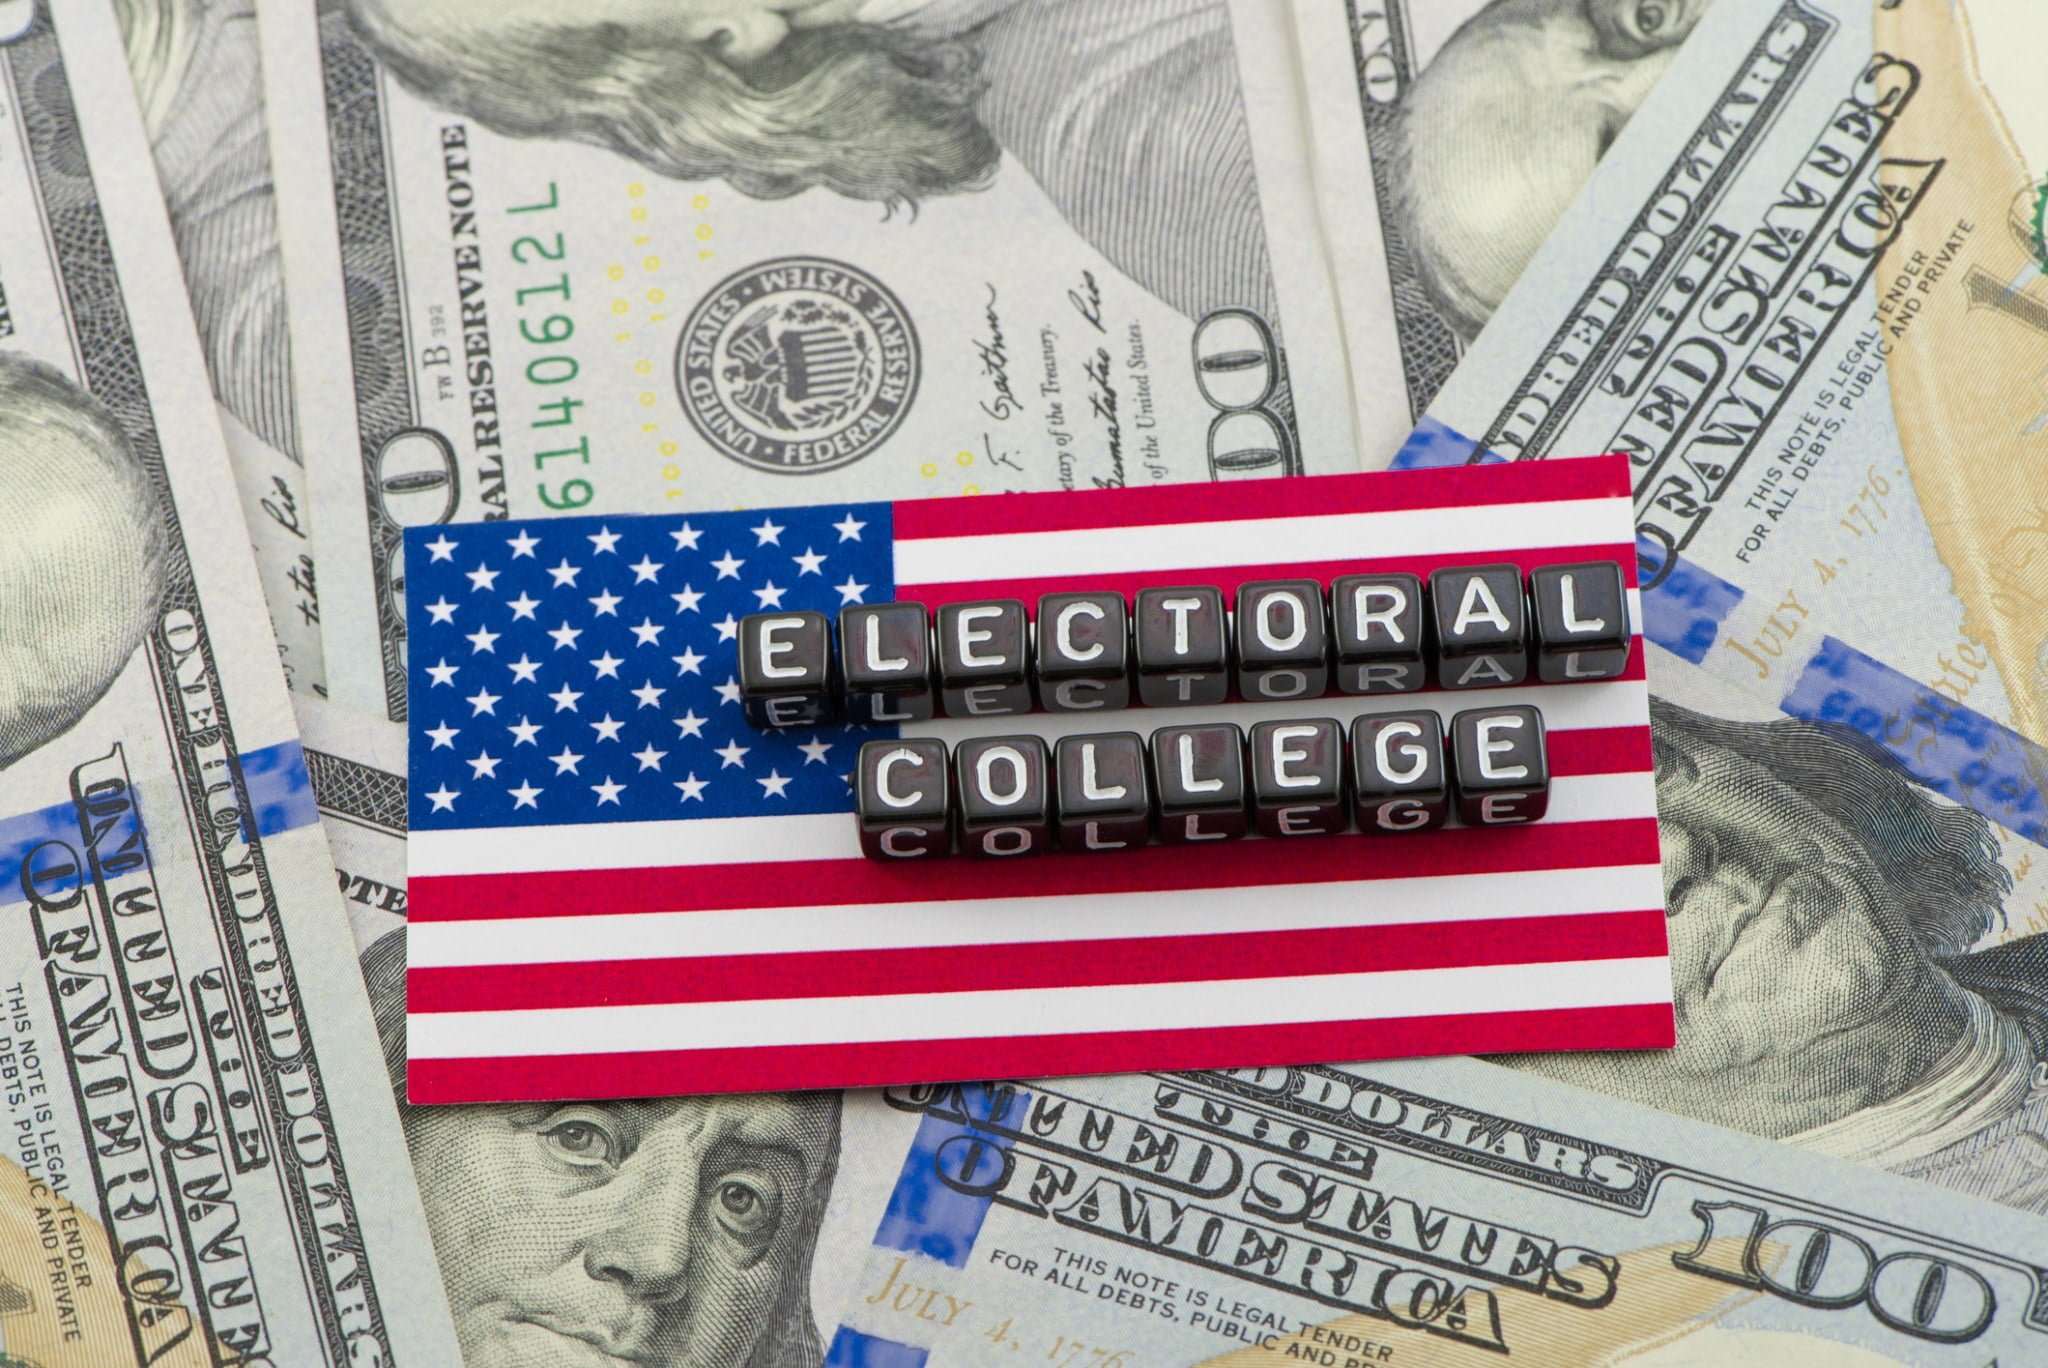 Americans Learn About Israeli Politics, Start Appreciating the Electoral College